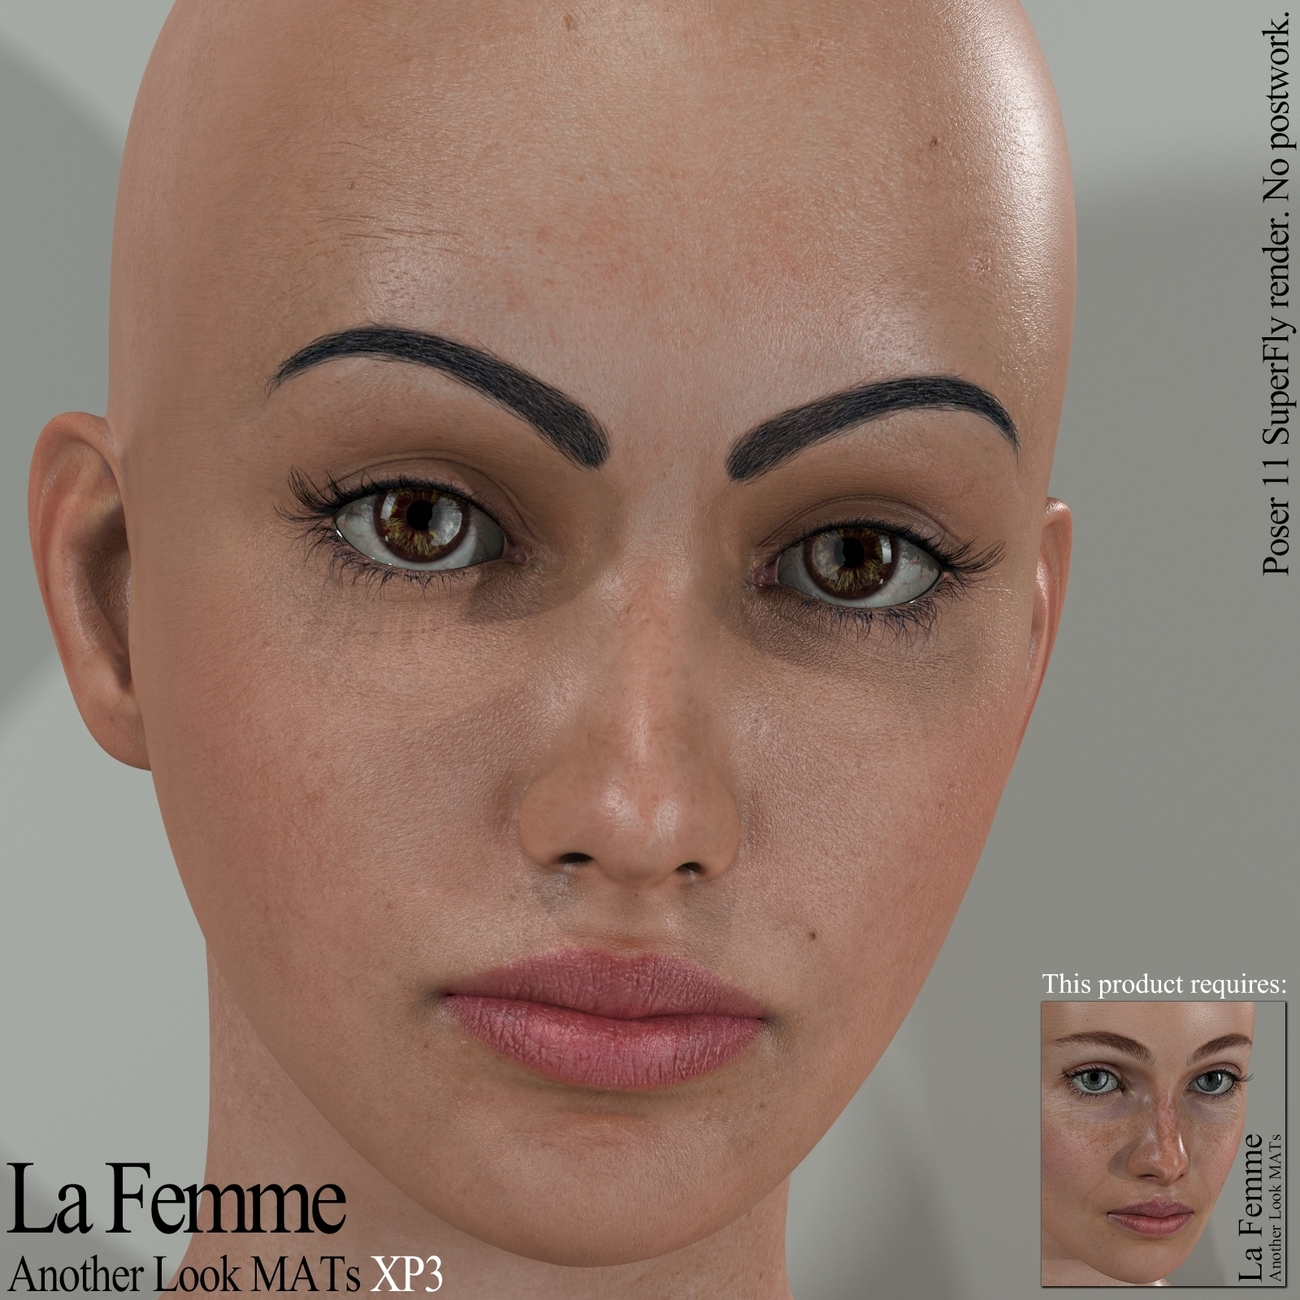 La Femme - Another Look MATs XP3